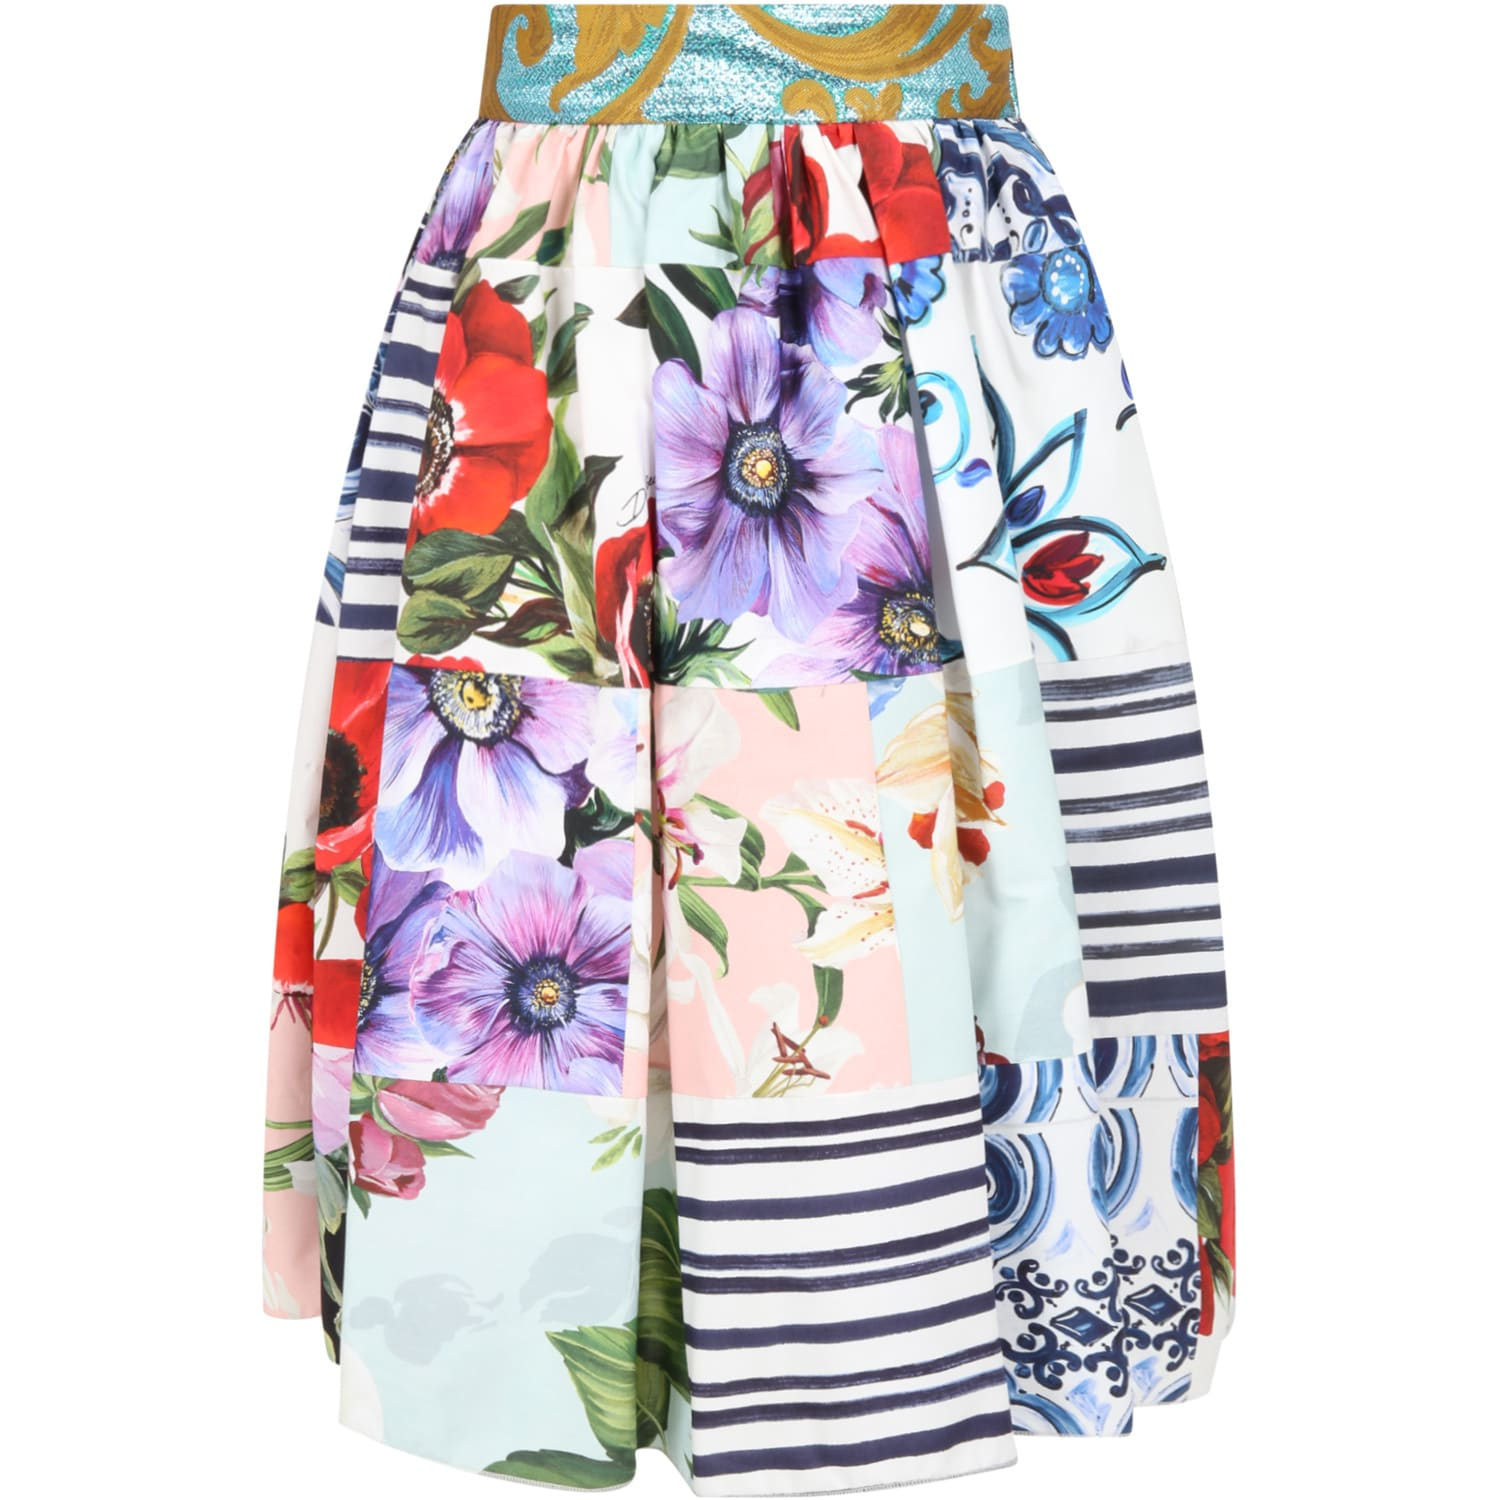 Dolce & Gabbana MULTICOLOR SKIRT FOR GIRL